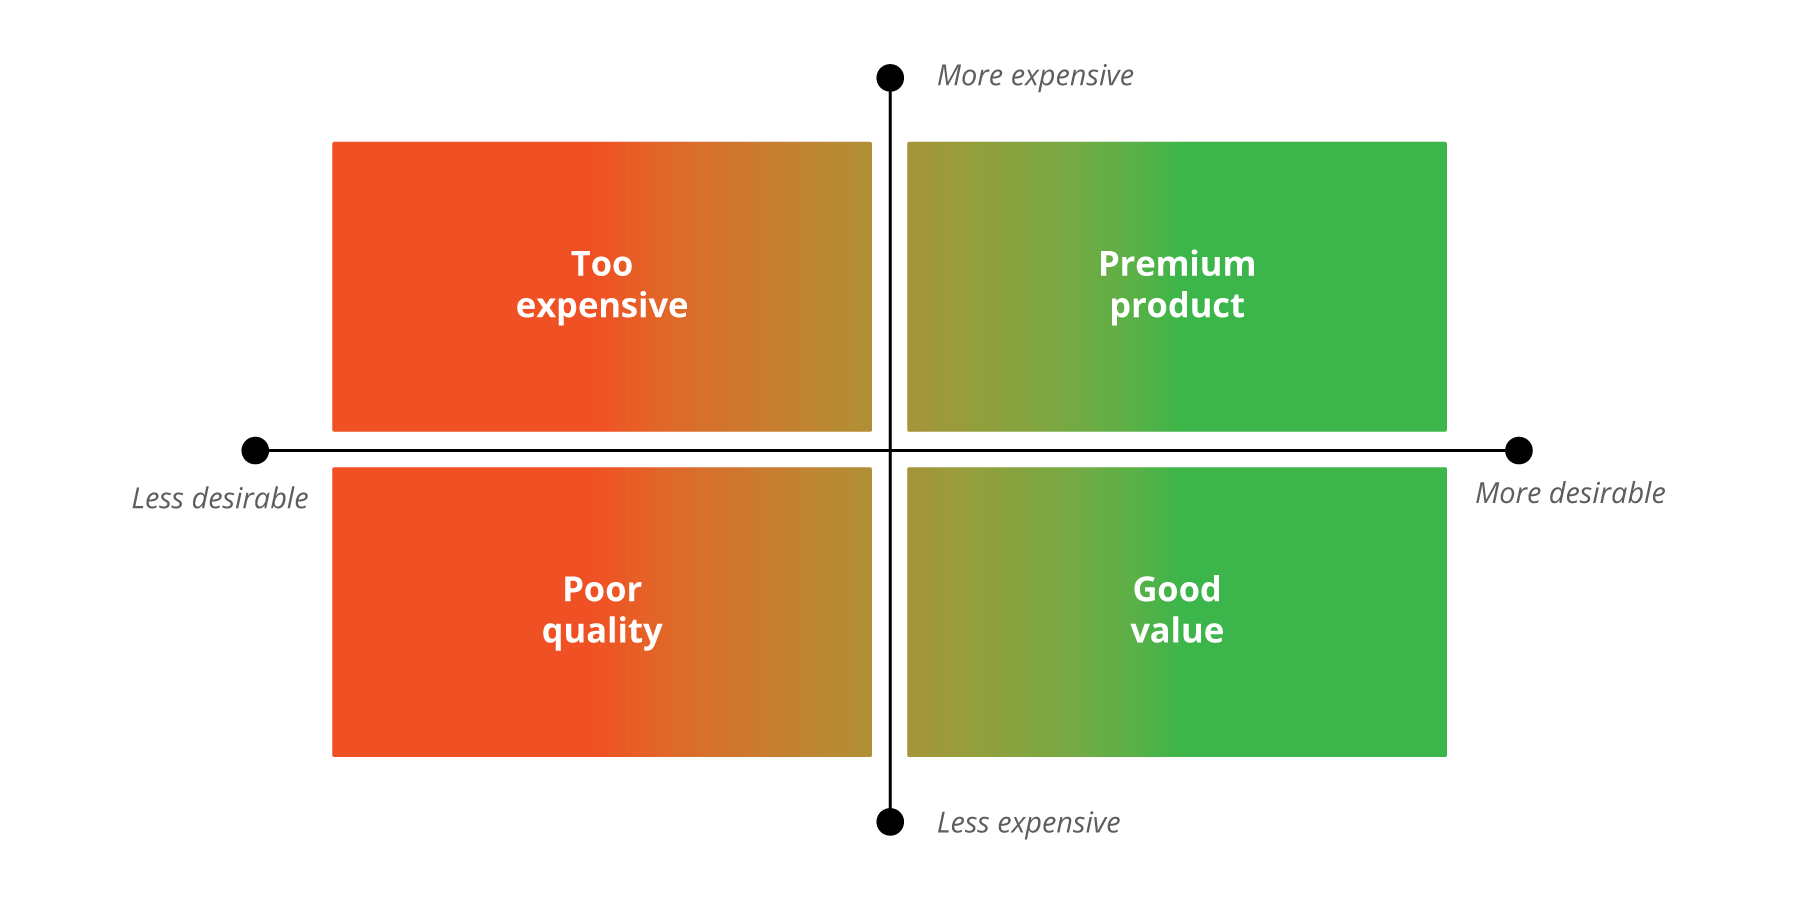 Graph on how the product is viewed by consumers